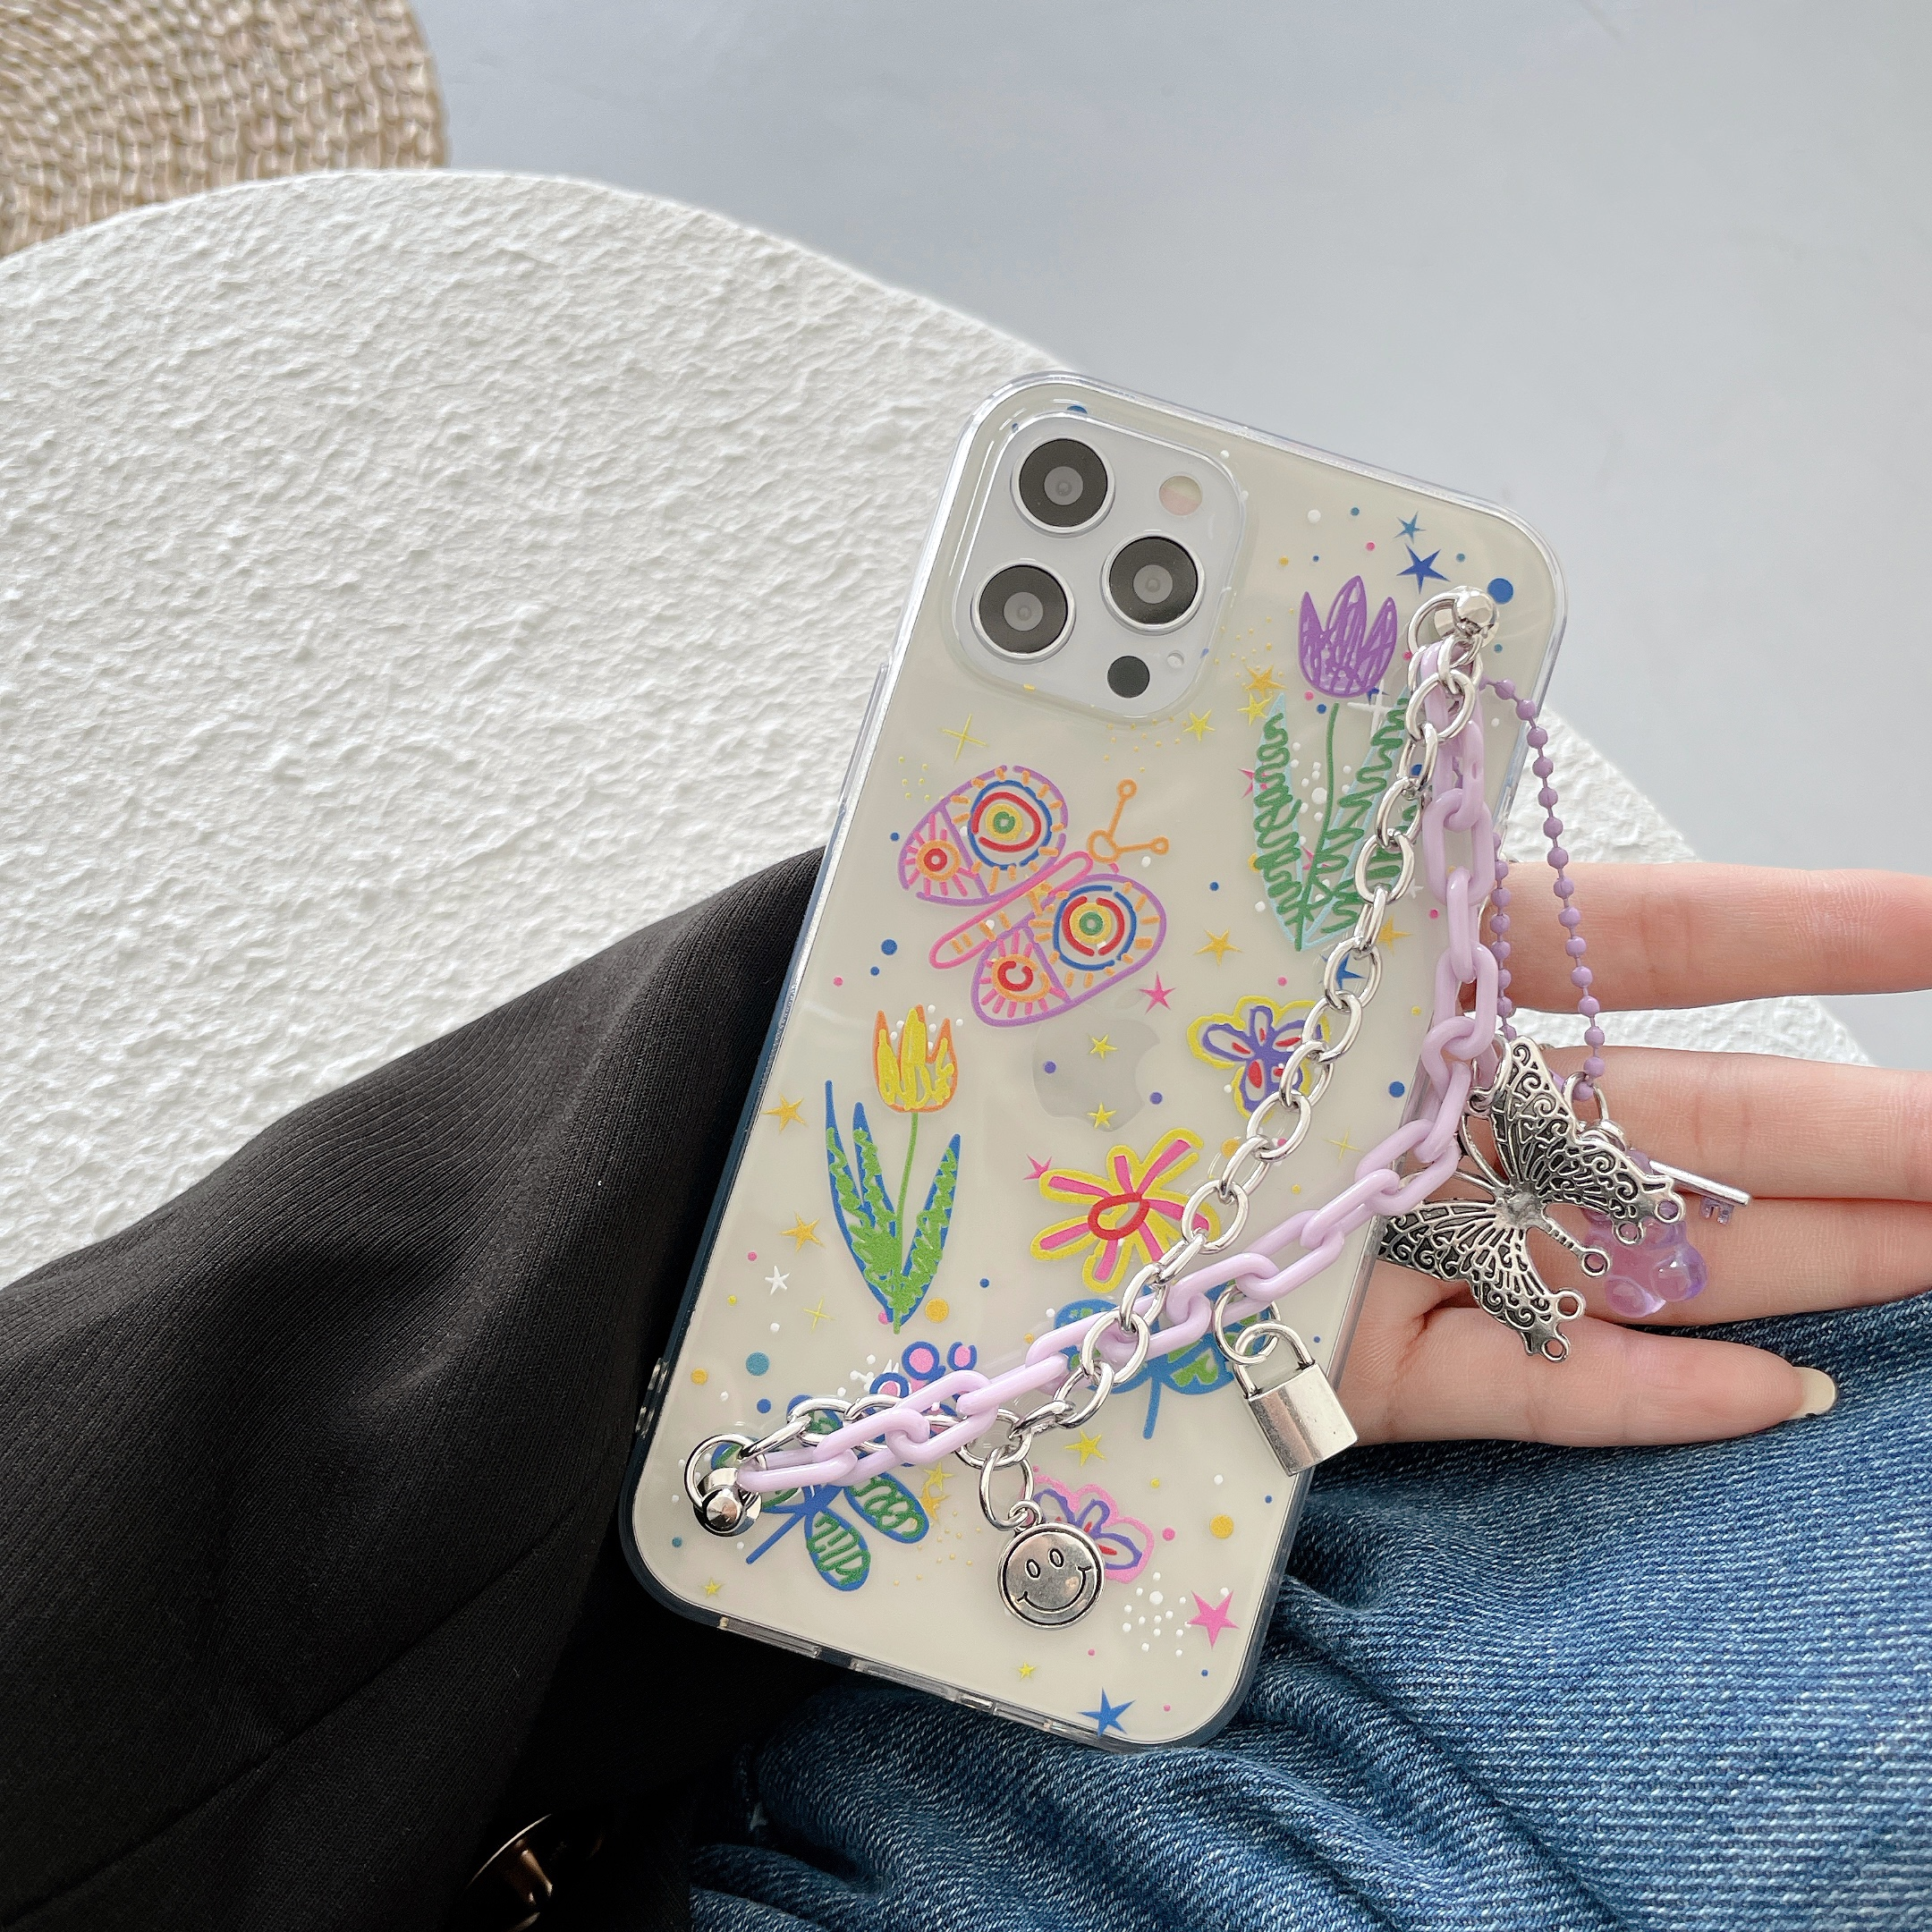 Butterfly Flower Bracelet Transparent Soft Phone Case For iPhone 12 Pro Max MiNi 11 Pro Max X XR XS MAX 8 7 Plus SE 2020 Cover